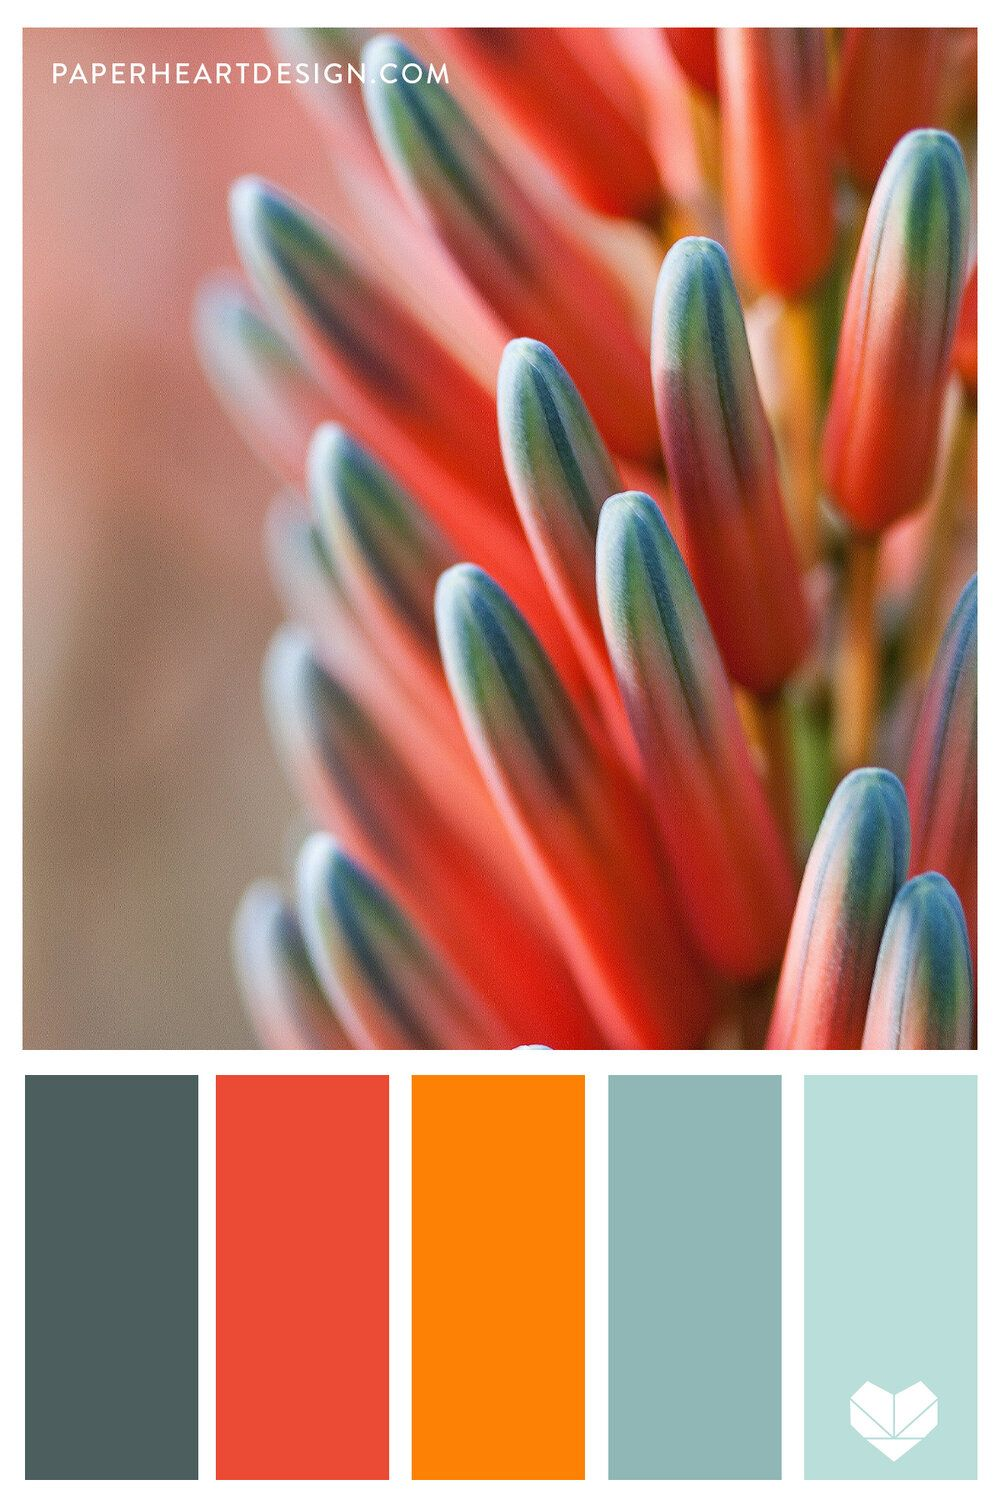 Outstanding Orange! A collection of orange inspired color schemes. Perfect for wedding colors, branding, interior design, and more. #colorpalette #colorscheme #colorinspo #orange #plant #nature #flower #teal #interiordesign #design #color #weddingcolors #branding